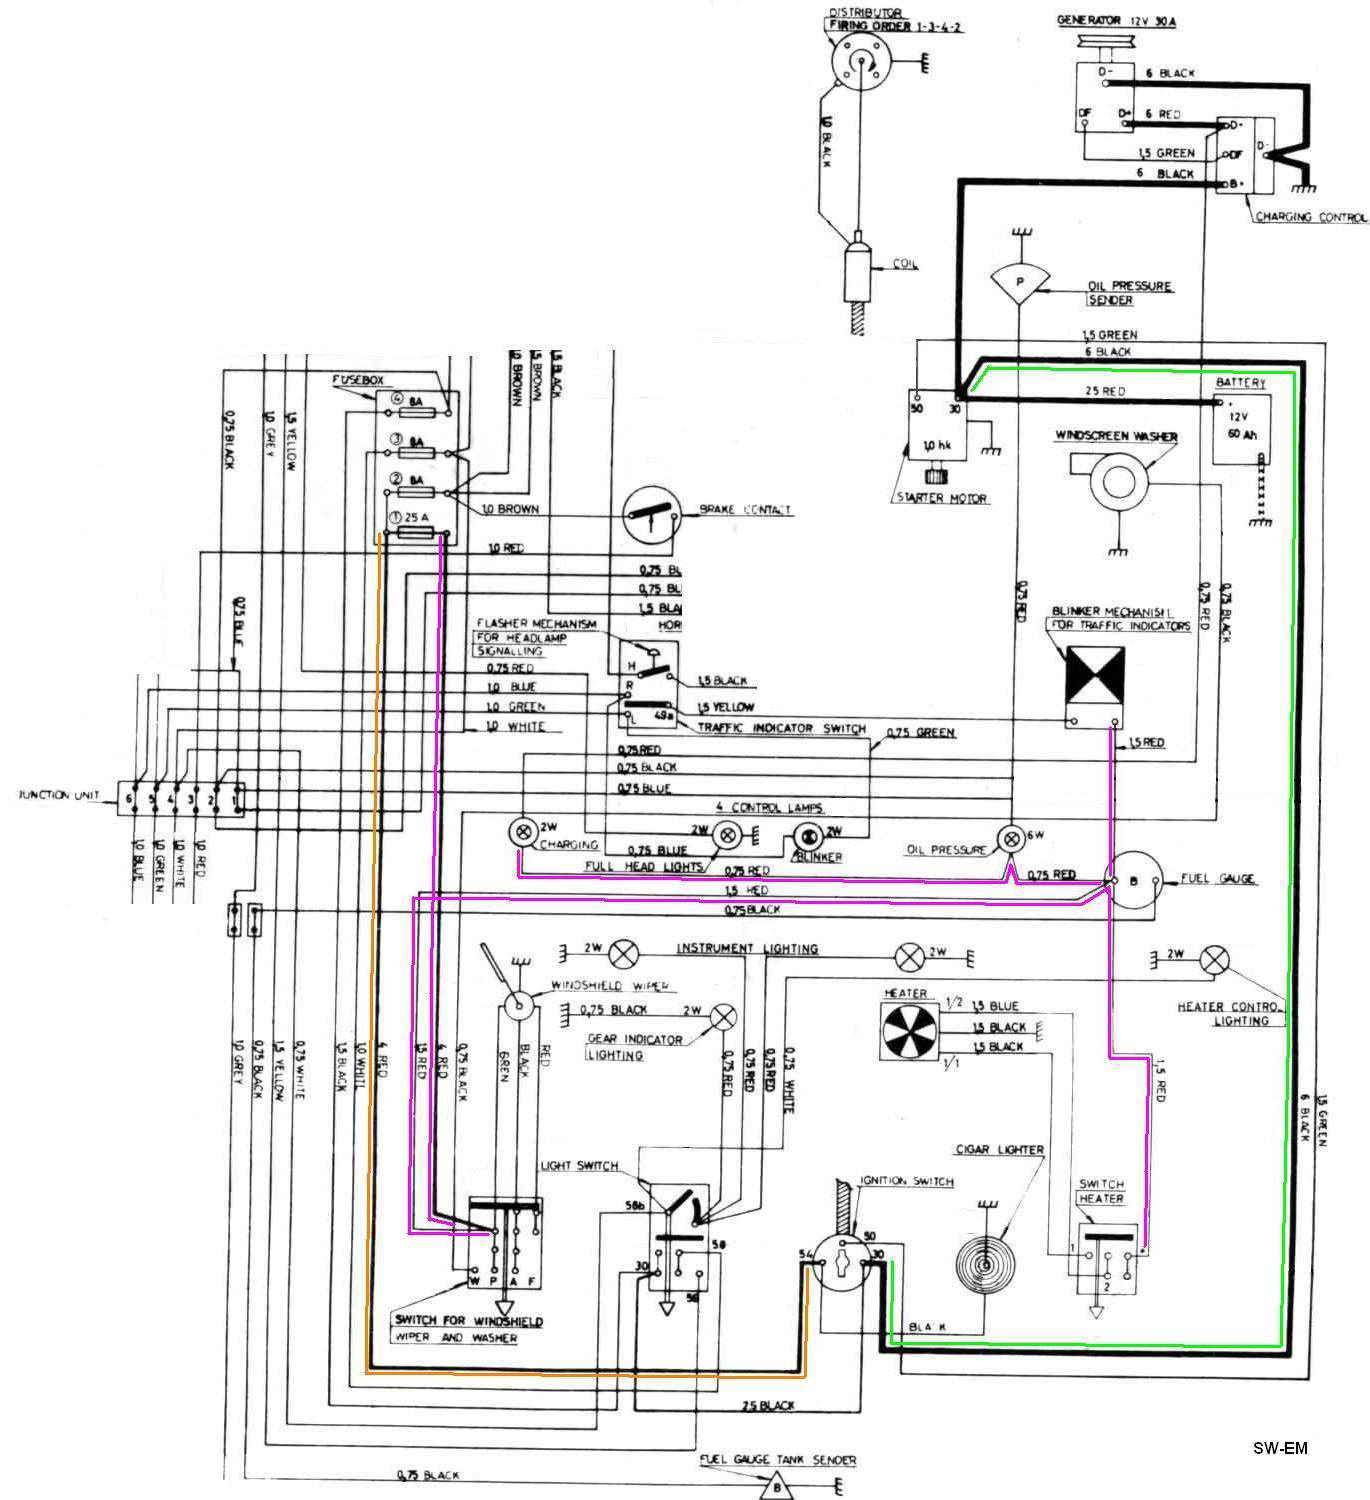 1991 Volvo 240 Wiring Diagrams - Wiring Diagrams List on